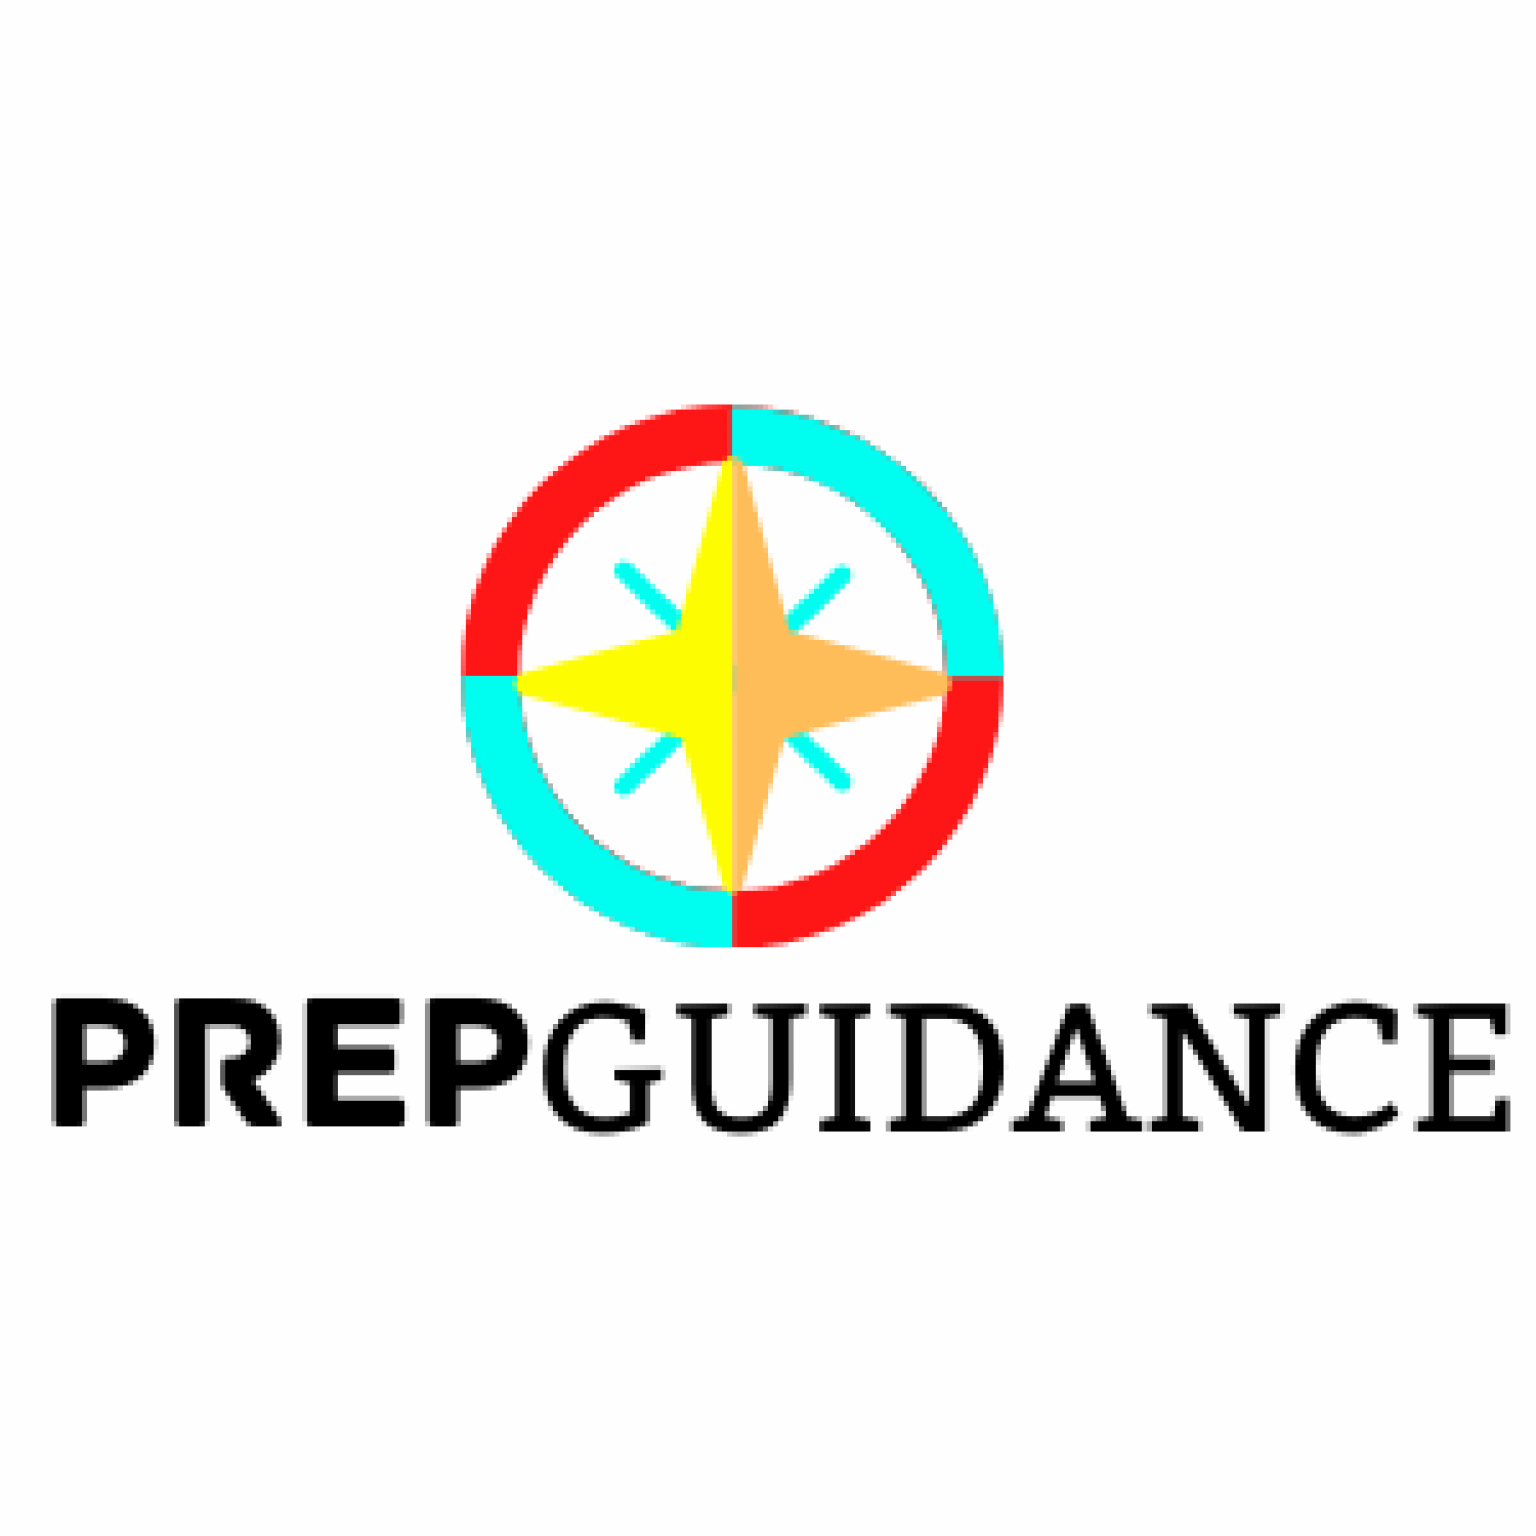 https://www.prepguidance.com/register/